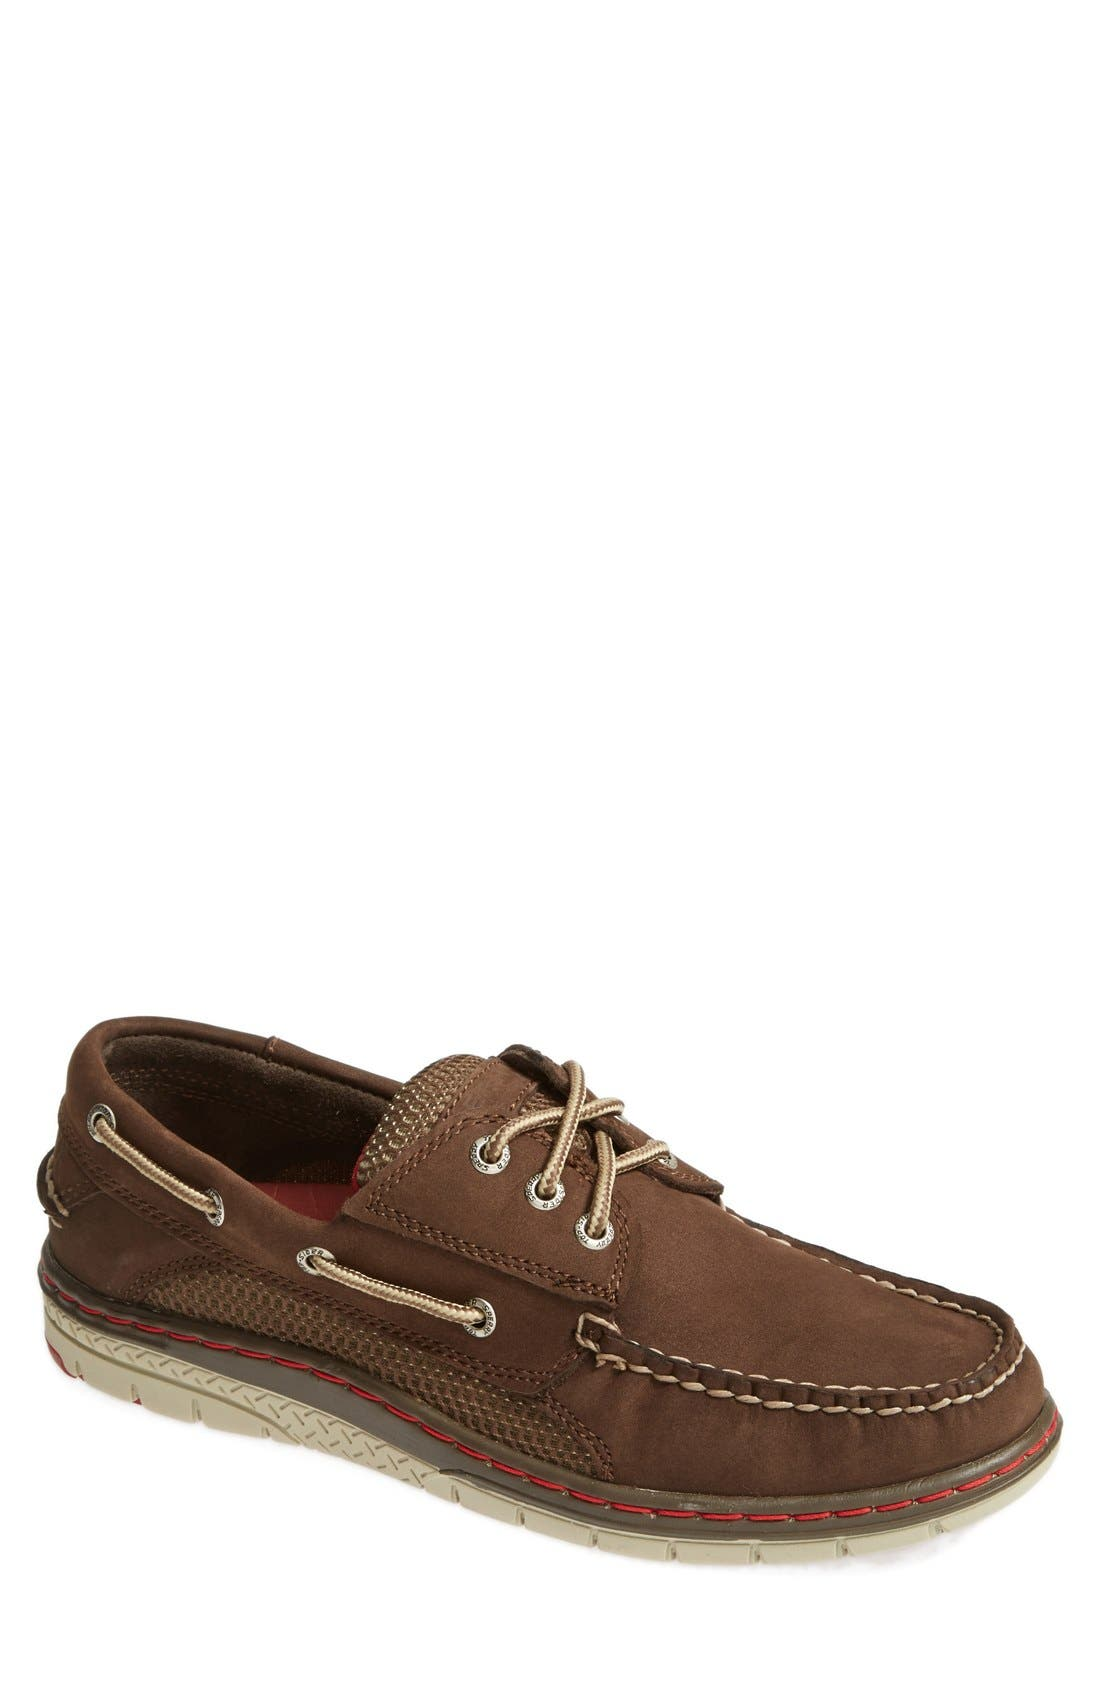 'Billfish Ultralite' Boat Shoe,                             Main thumbnail 10, color,